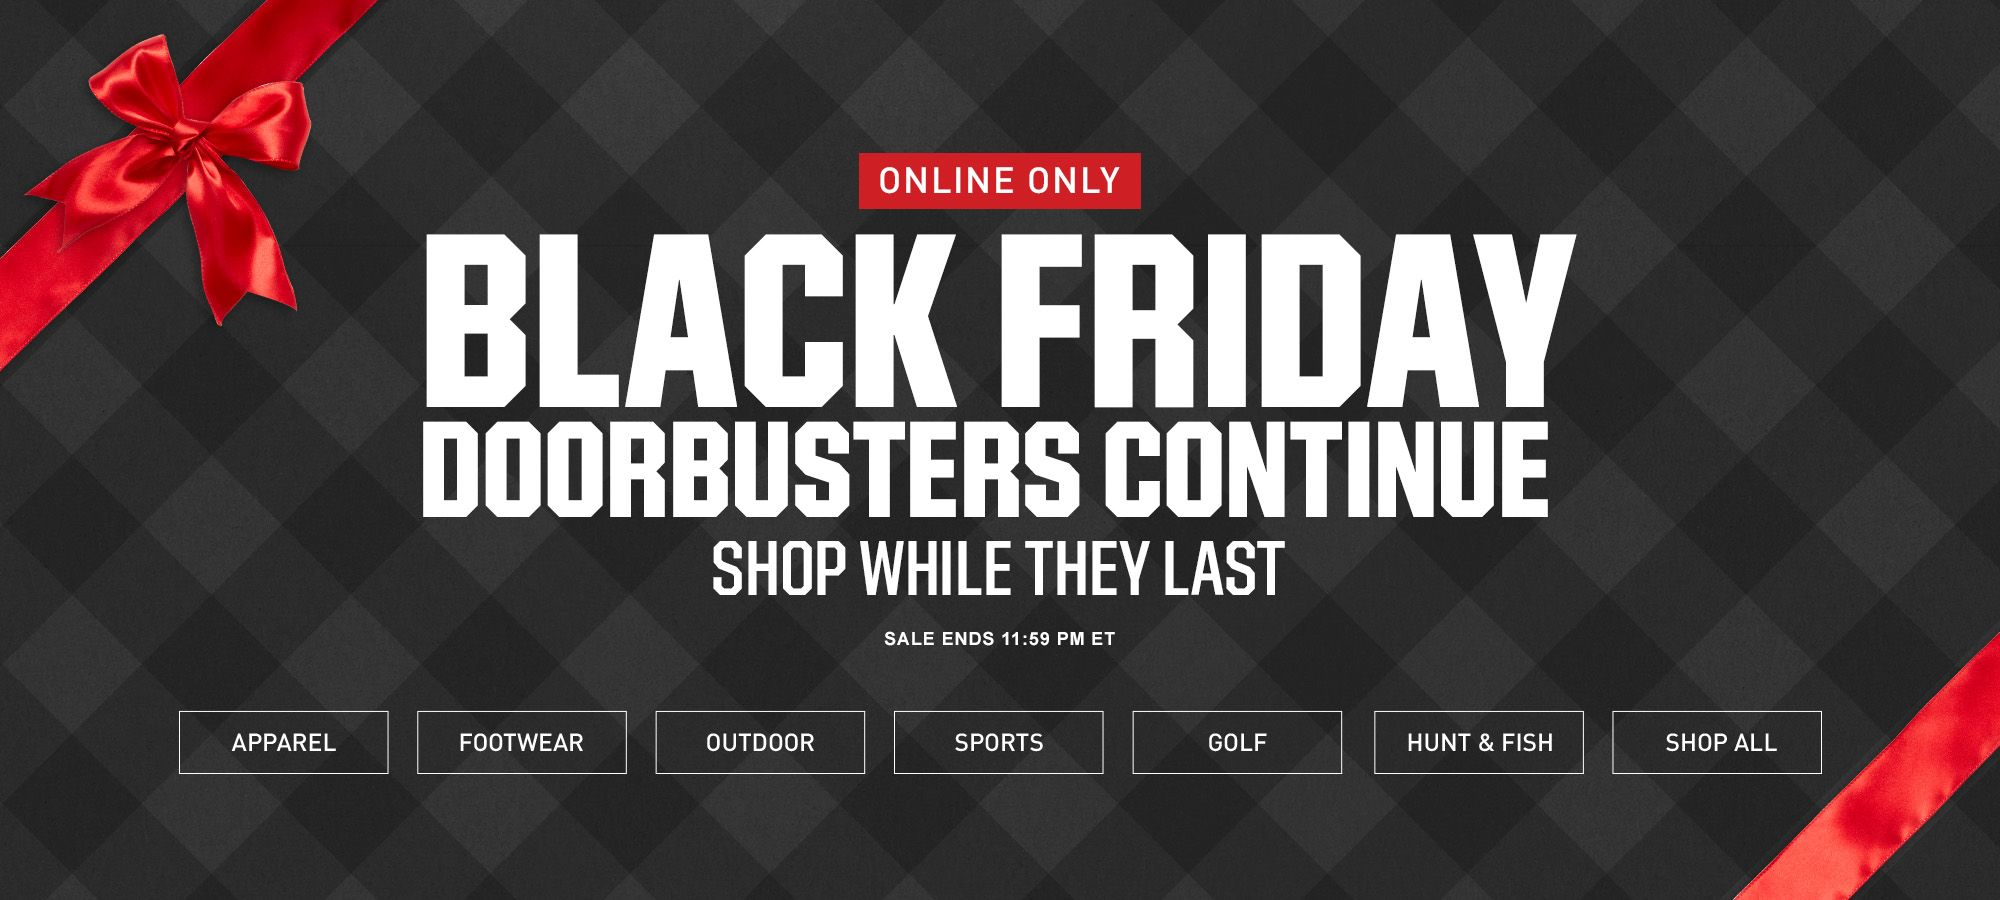 Game on closeouts sporting goods - Black Friday Doorbusters Now Through Friday 2pm